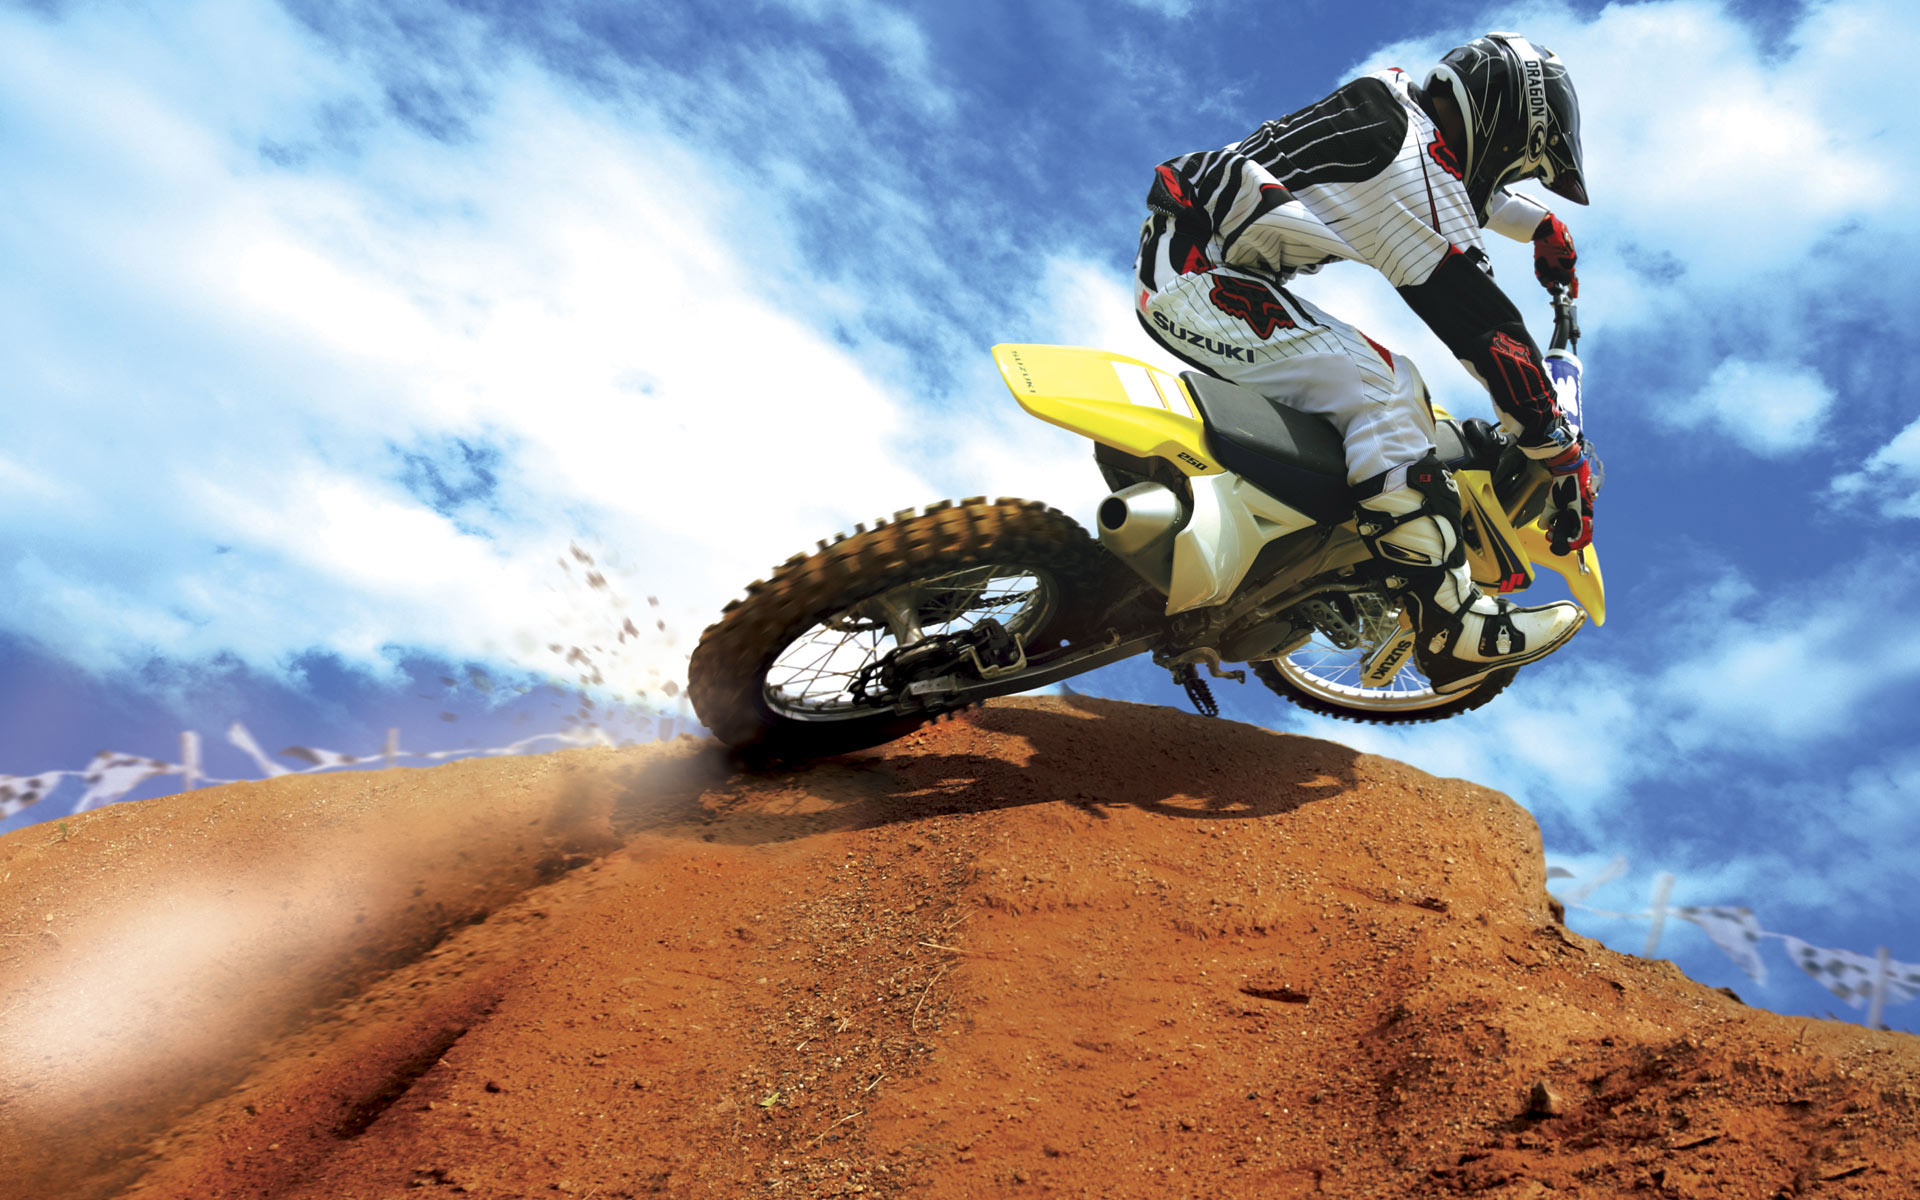 Crazy Motocross Bike Wallpapers HD Wallpapers 1920x1200